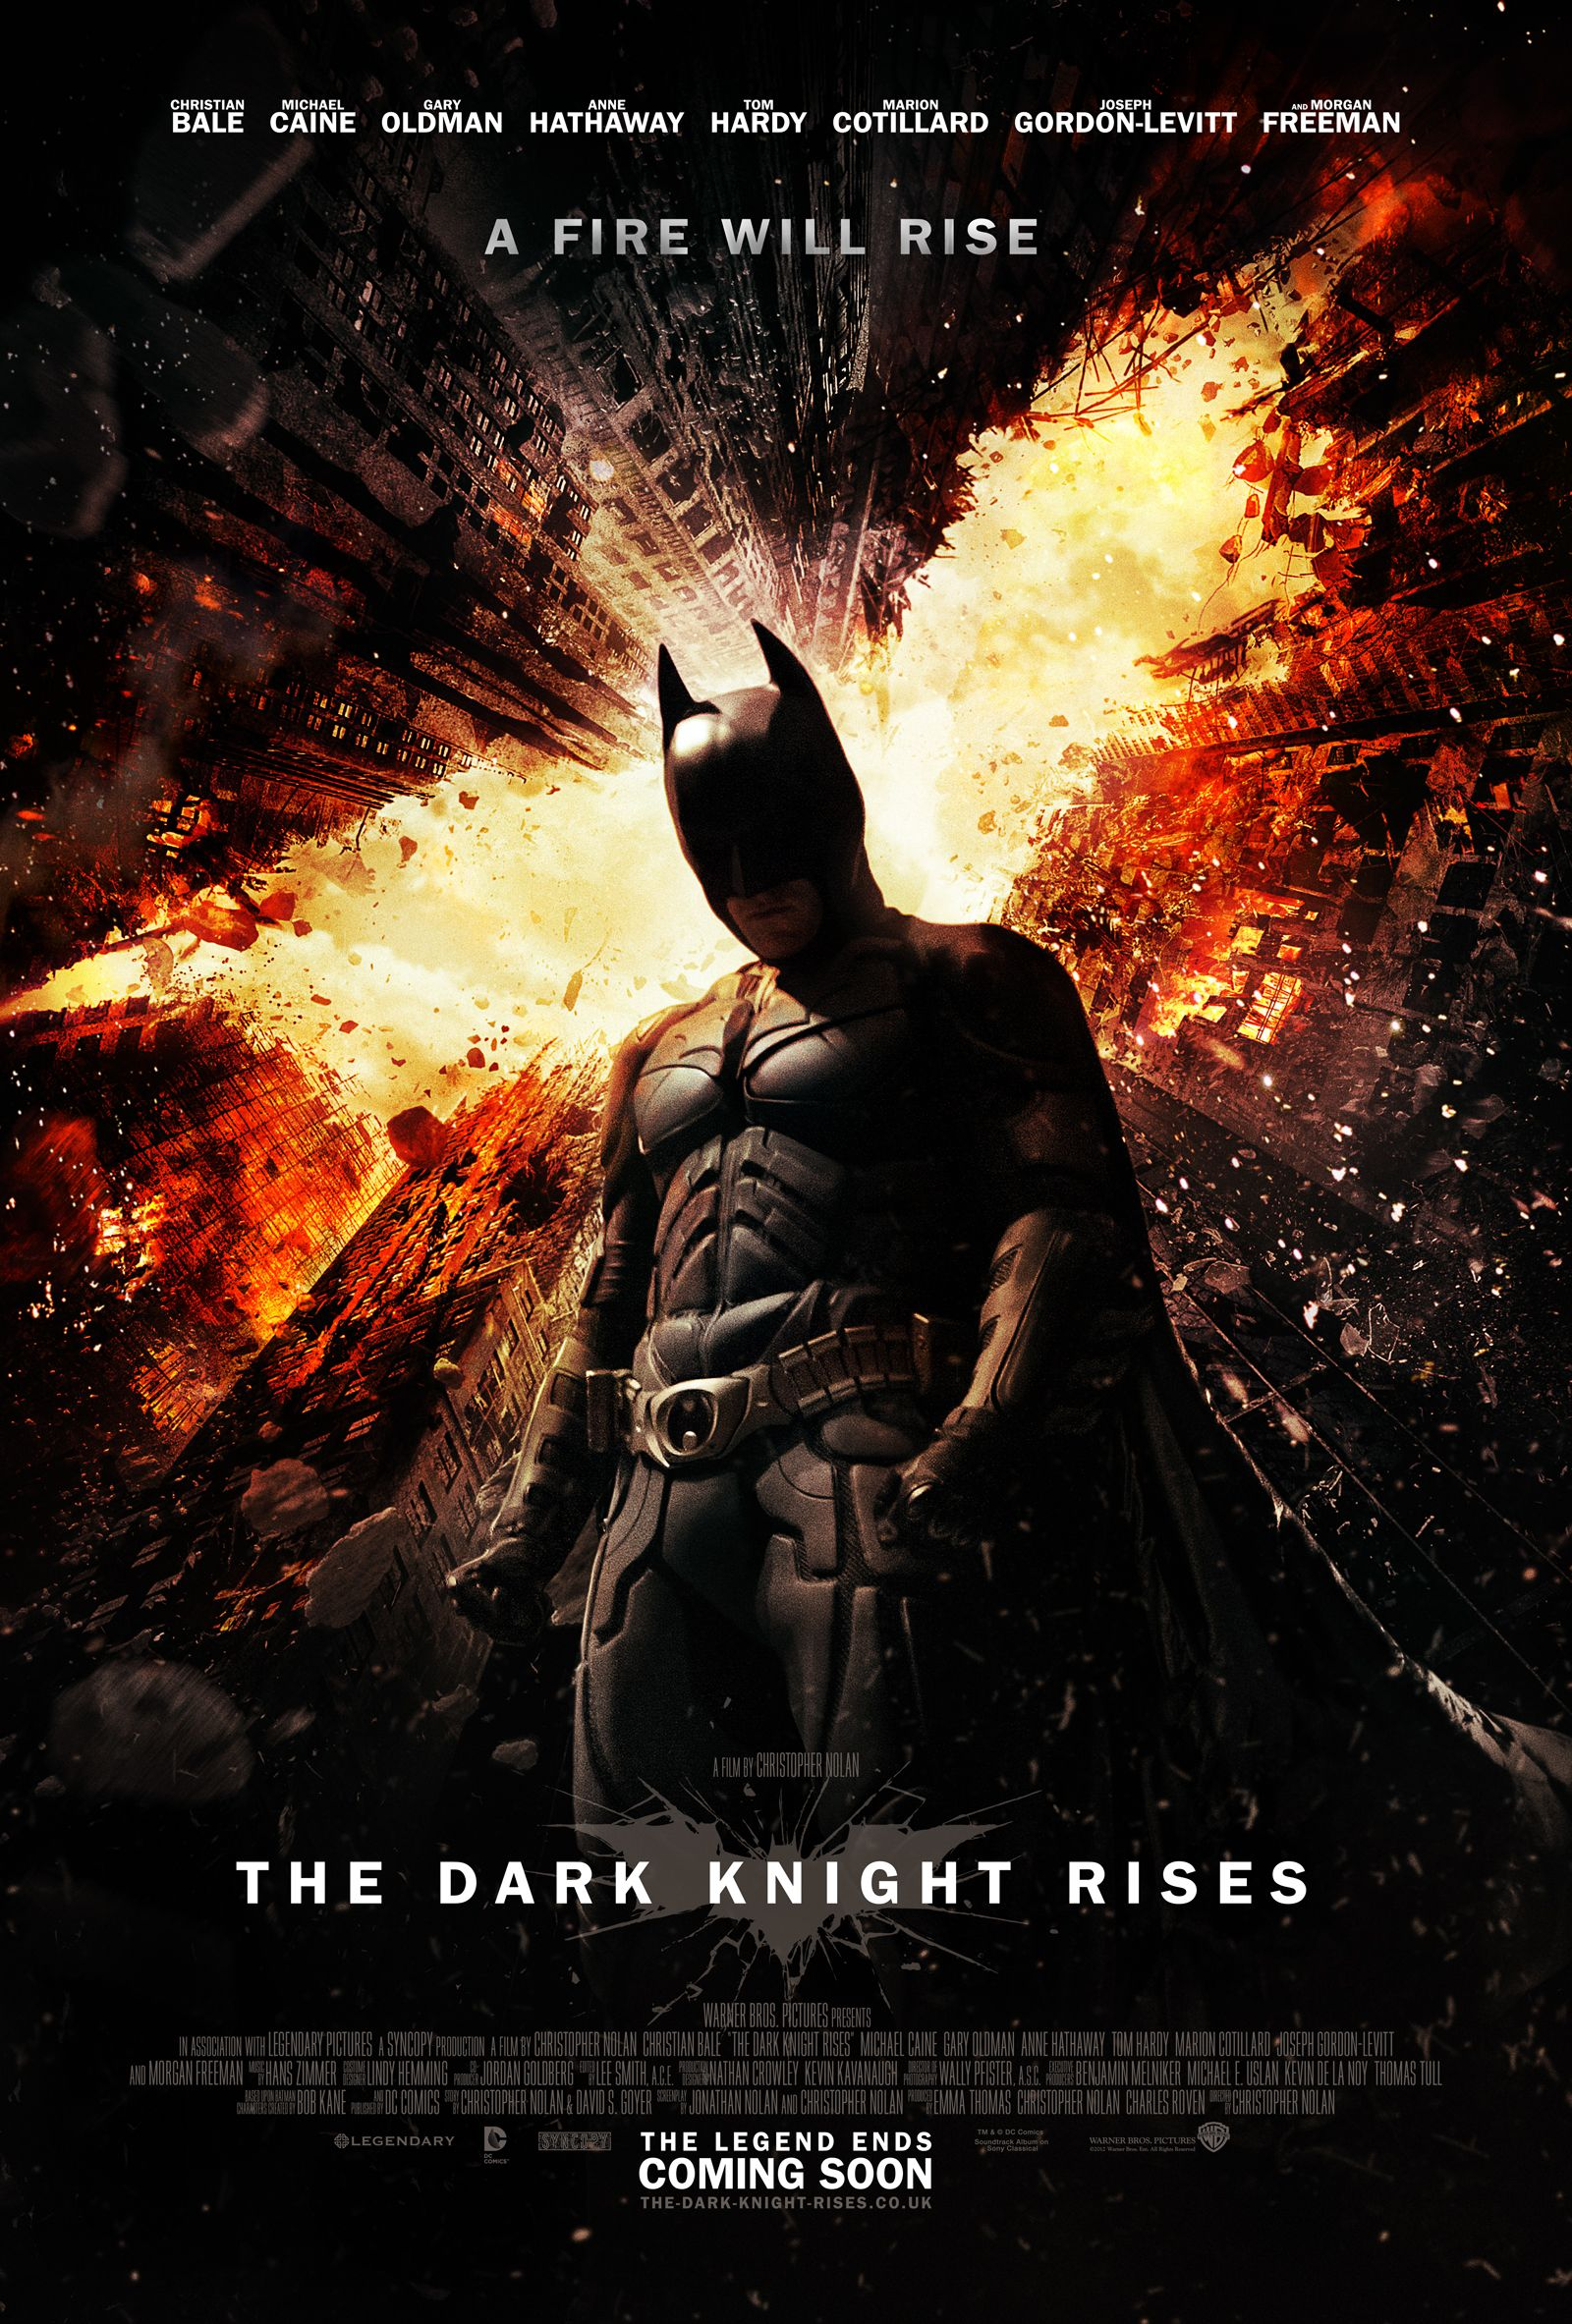 Brand New Darkknightrises Poster Countdown To It S Release With